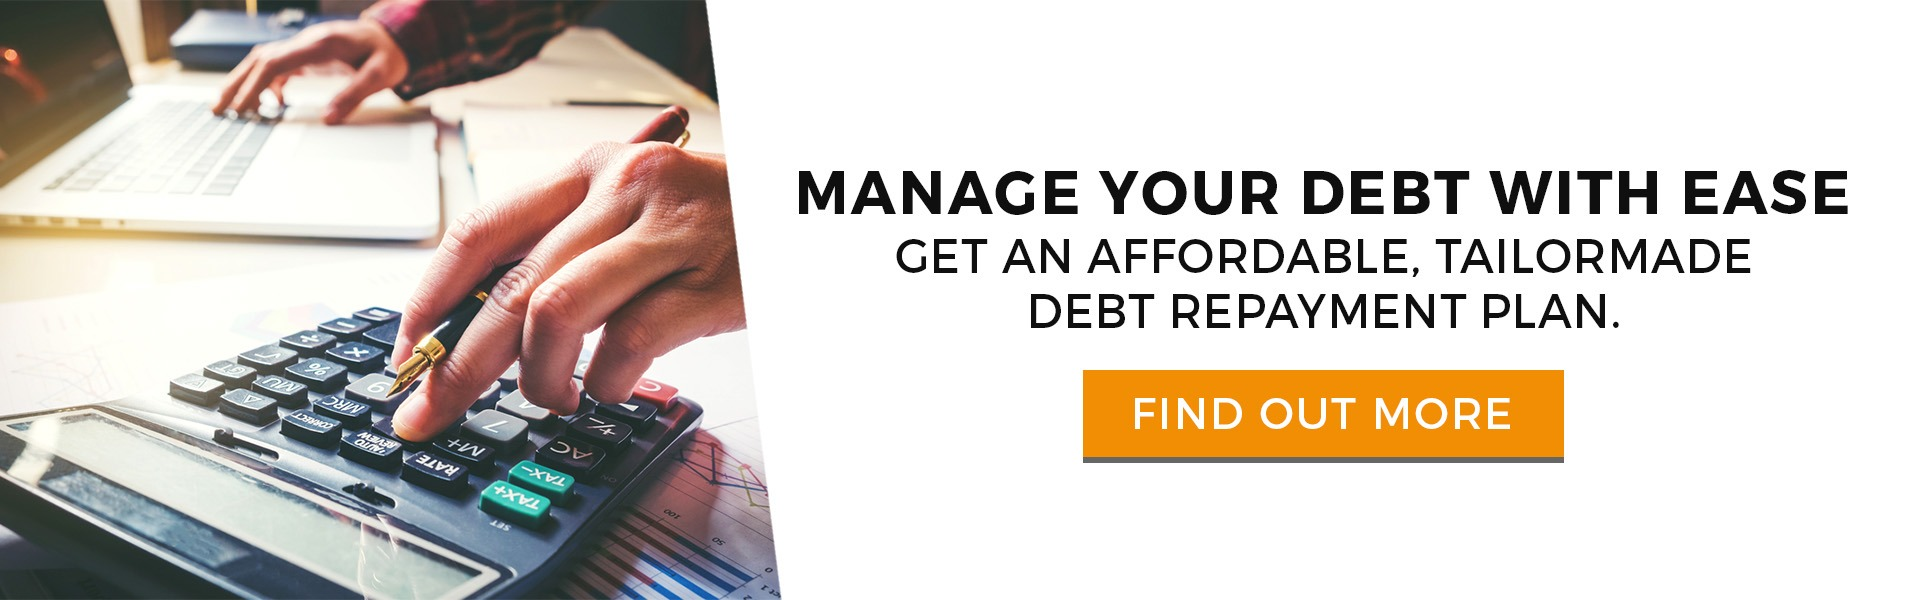 Manage your debt with ease